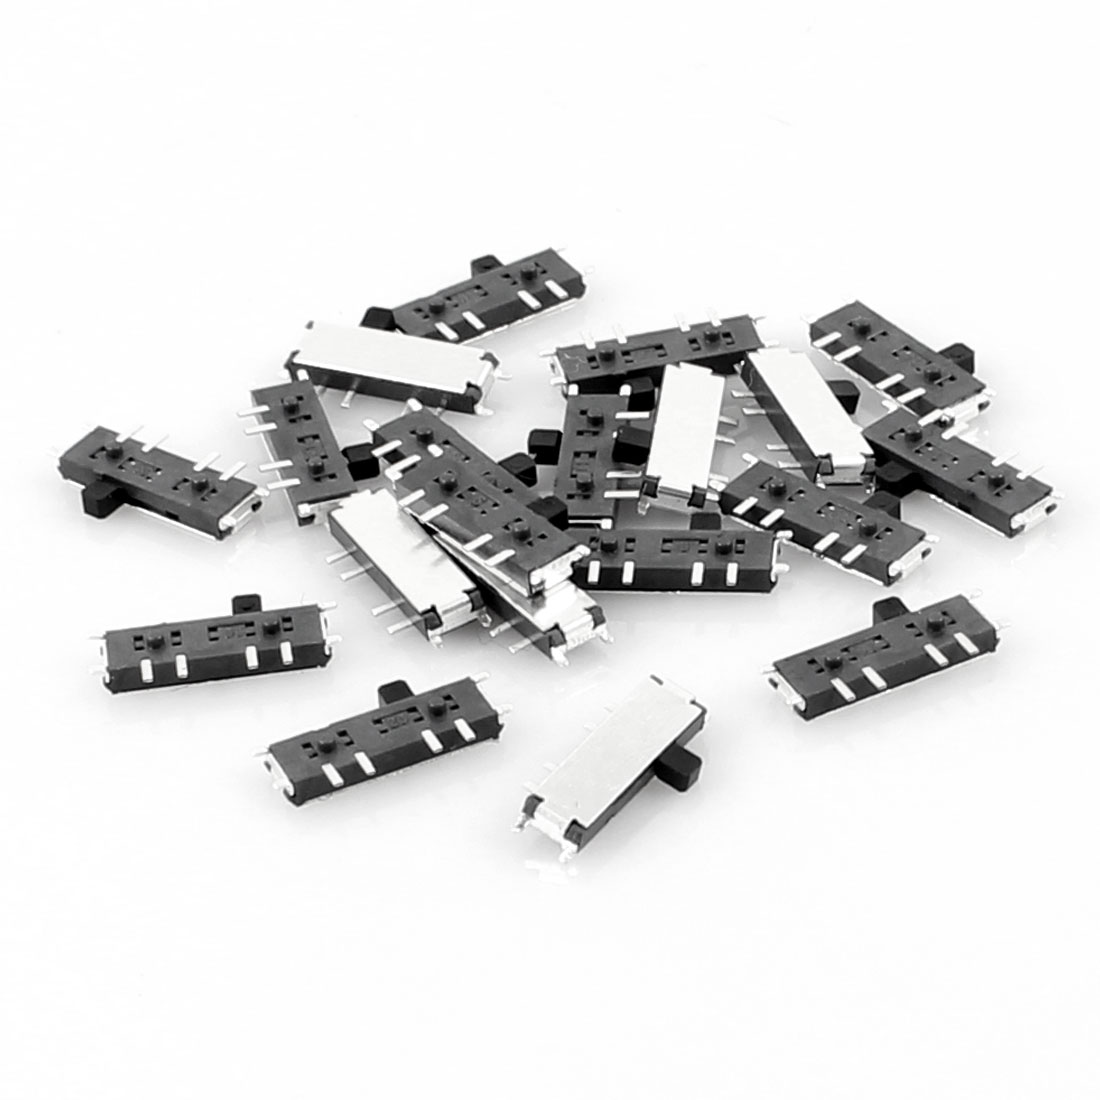 20 Pcs On/Off/On 8 Pin 2P2T DPDT Mini SMD SMT Slide Switch 10mm x 3mm